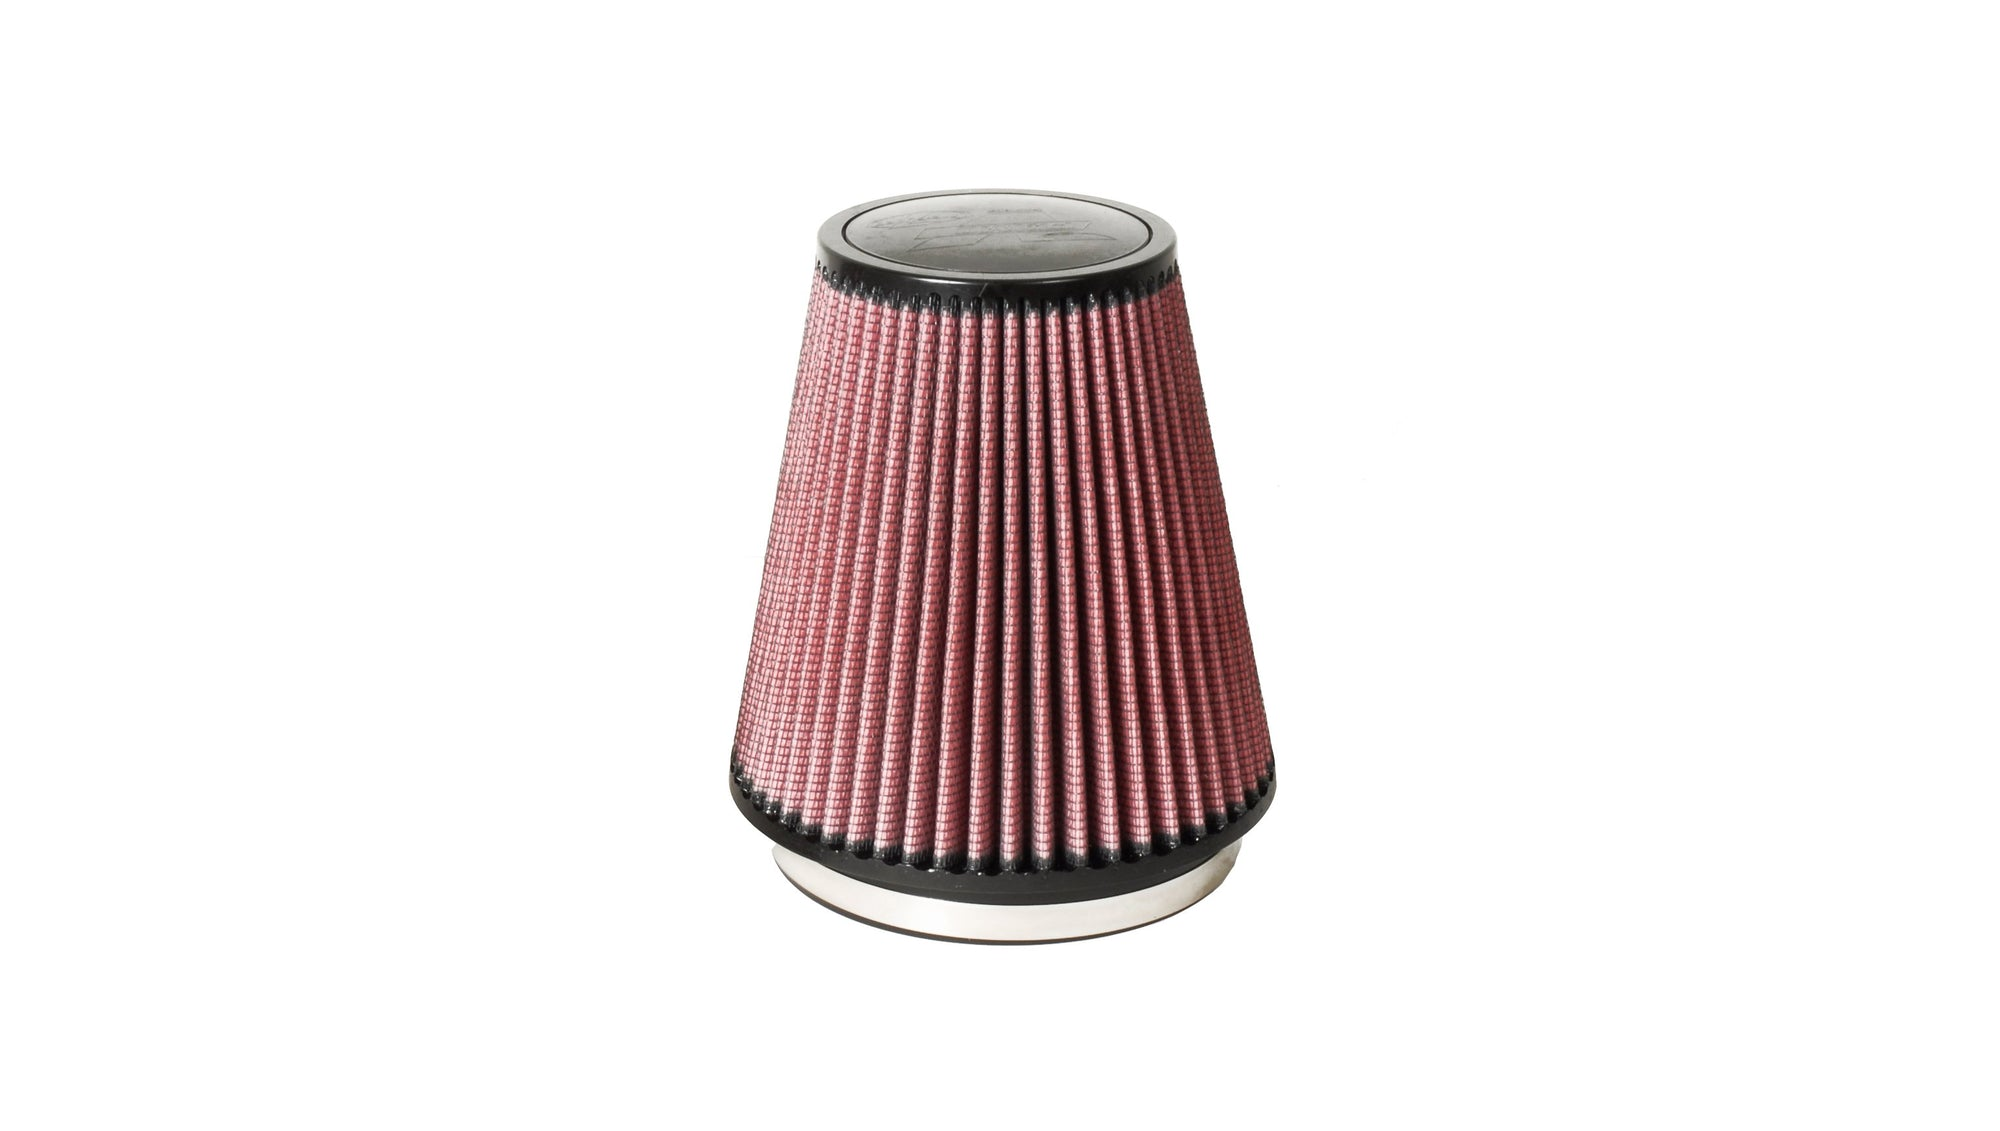 Pro5 Cotton Oiled Air Intake Air Filter - 5150